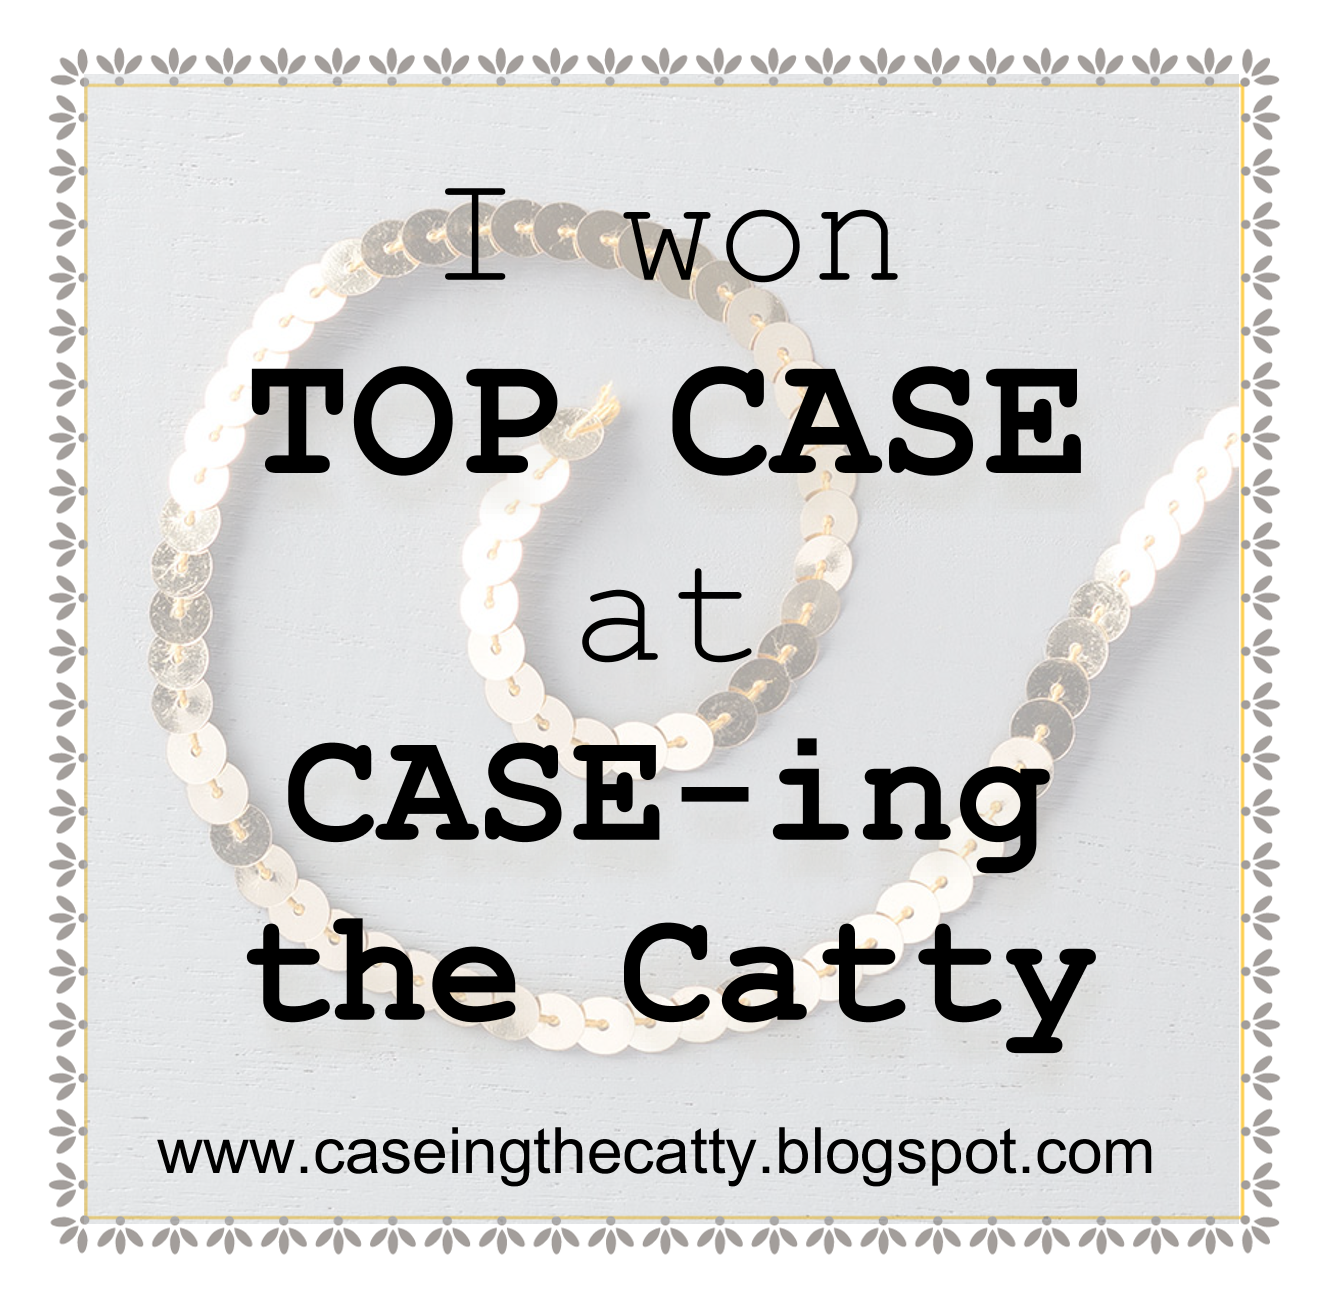 Case-ing the Catty Callenges